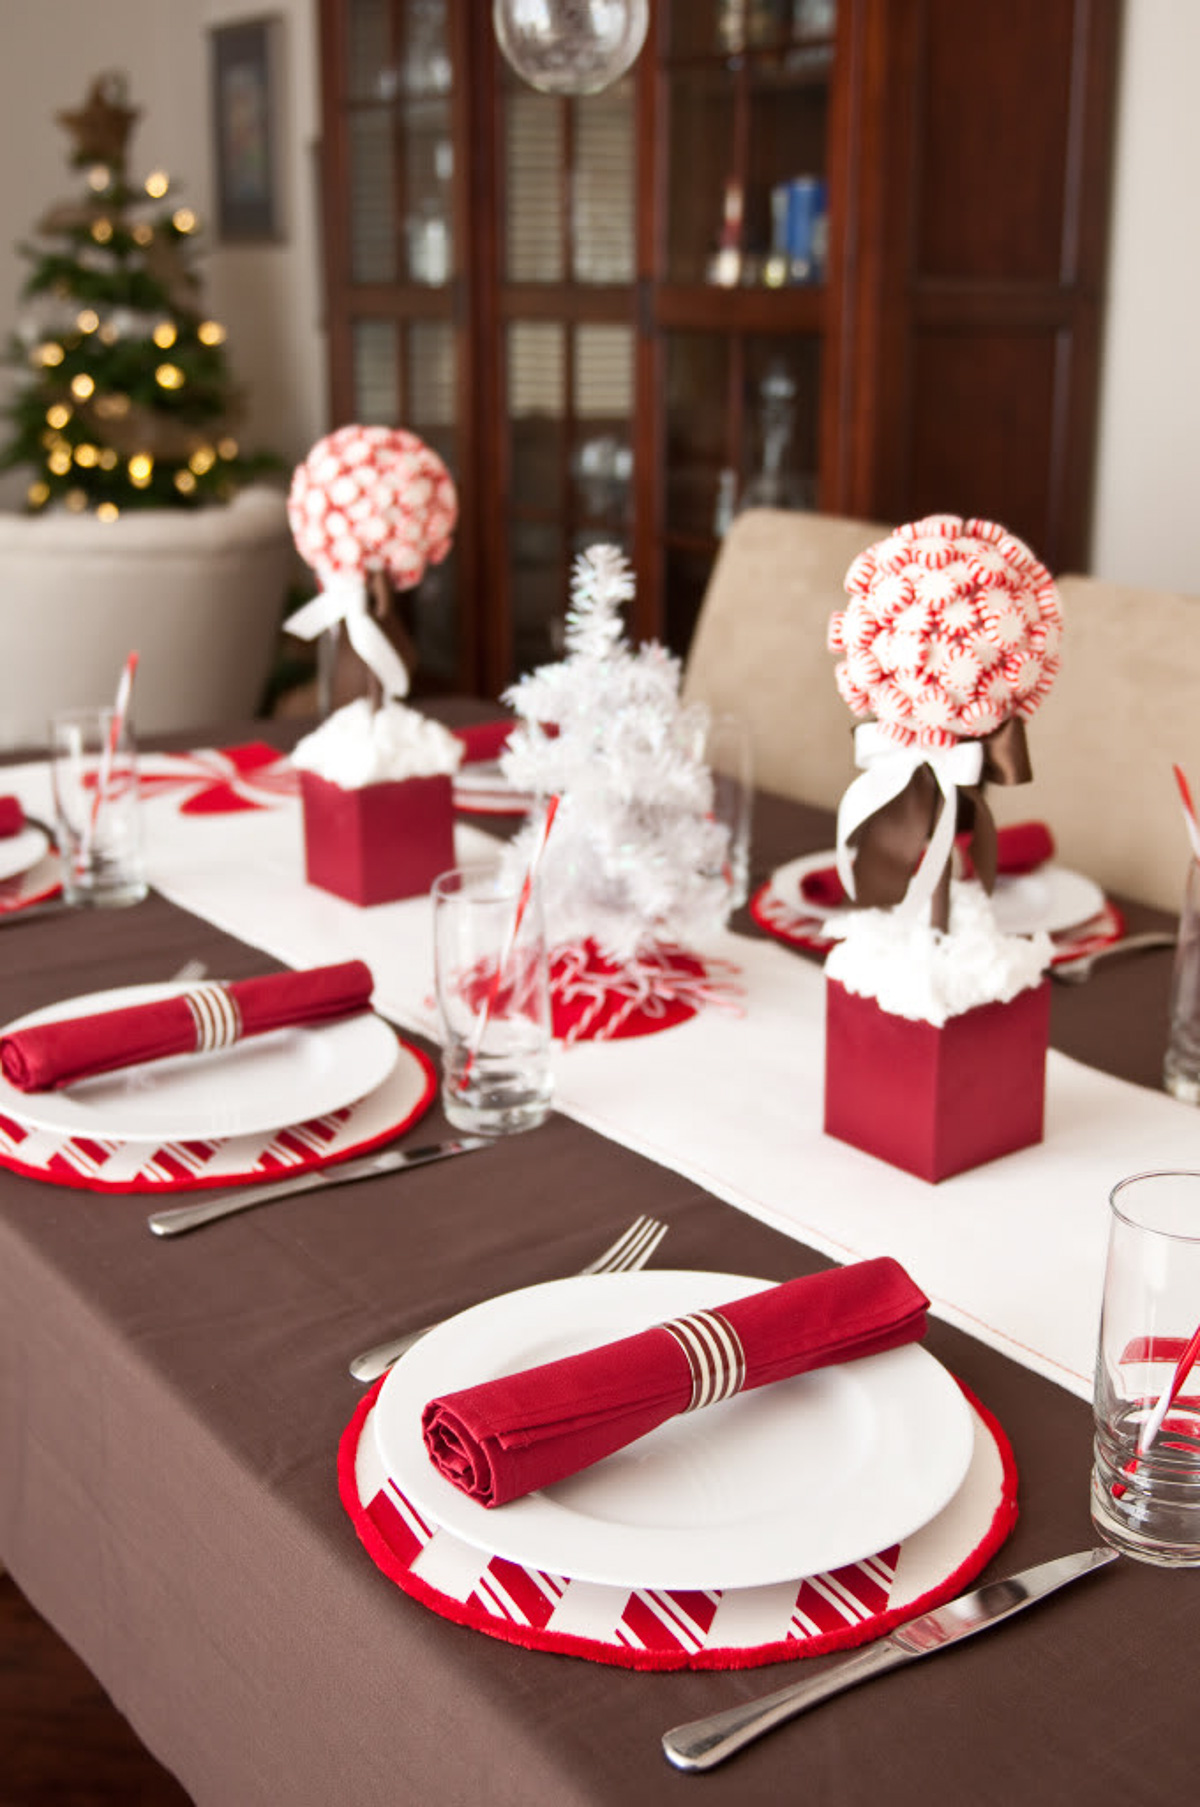 Christmas table decoration diy - Cindy Lou Who Table Toppers